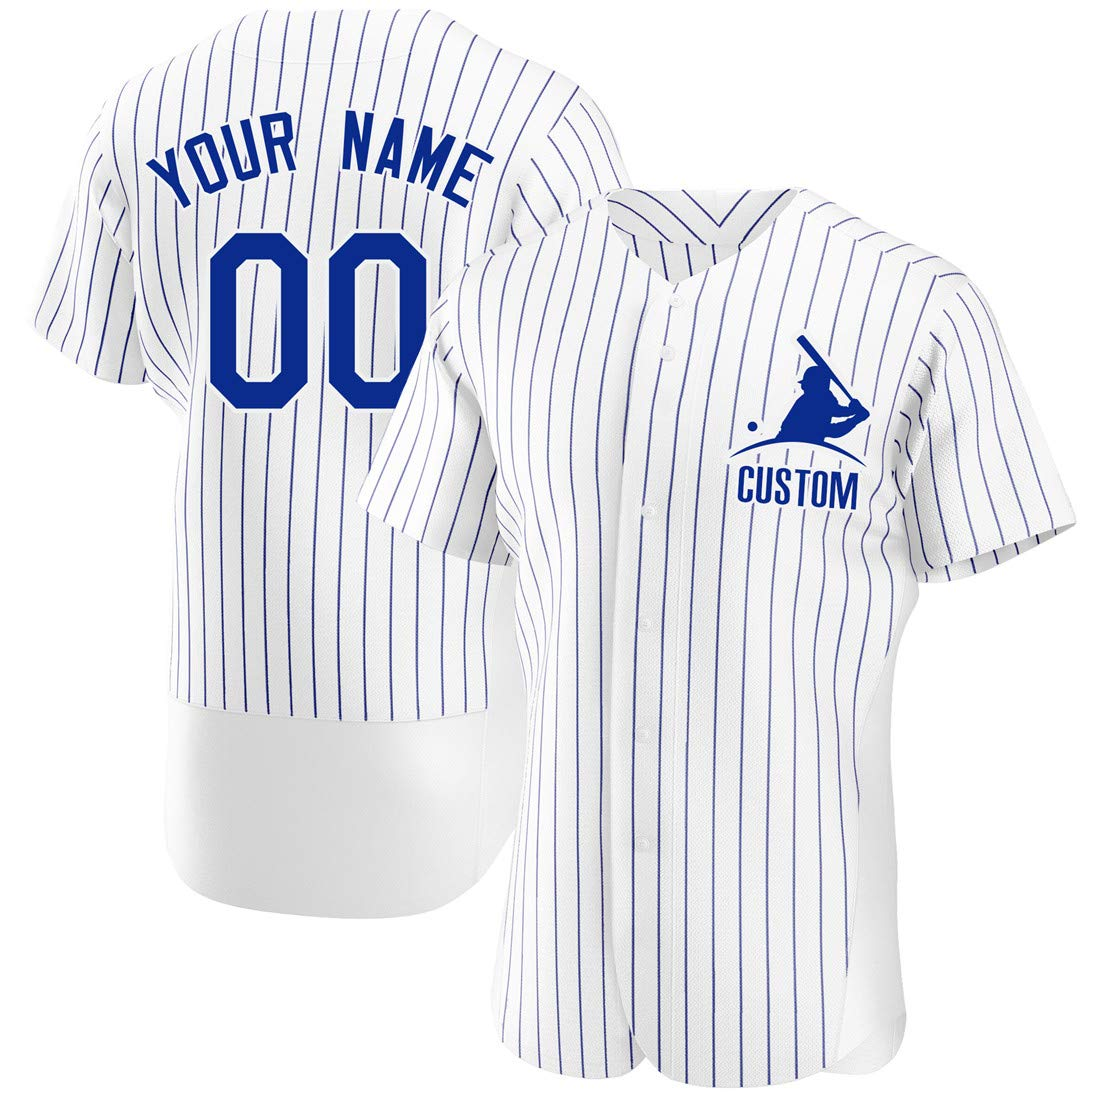 KXK Custom Stitched Baseball Jersey Personalized Button Down Baseball T Shirt with Team Name &Numbers for Men/Women/Boys